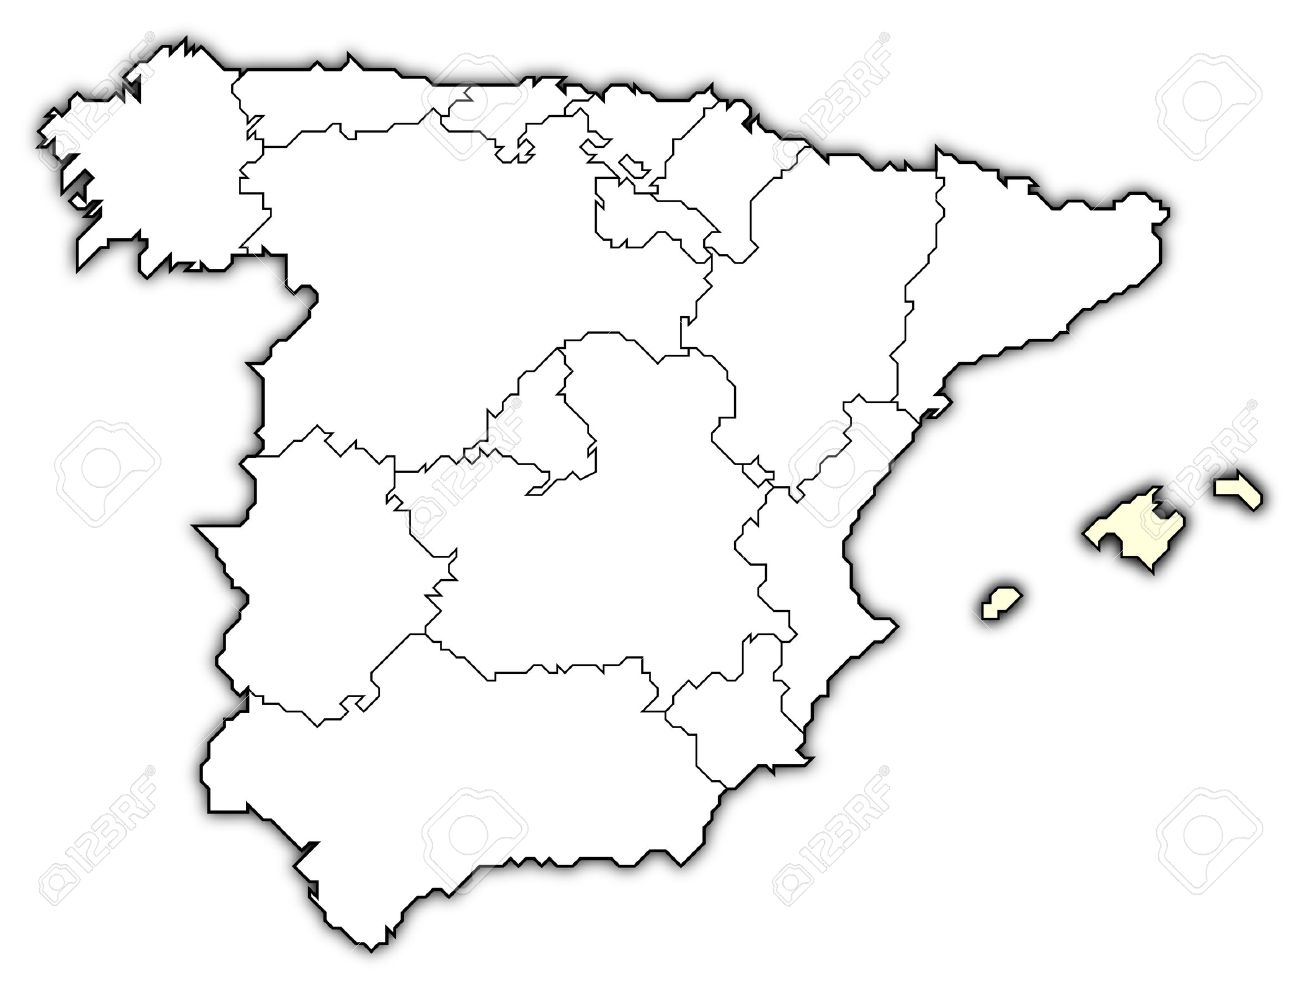 Political Map Of Spain With The Several Regions Where The Balearic - Spain regions map